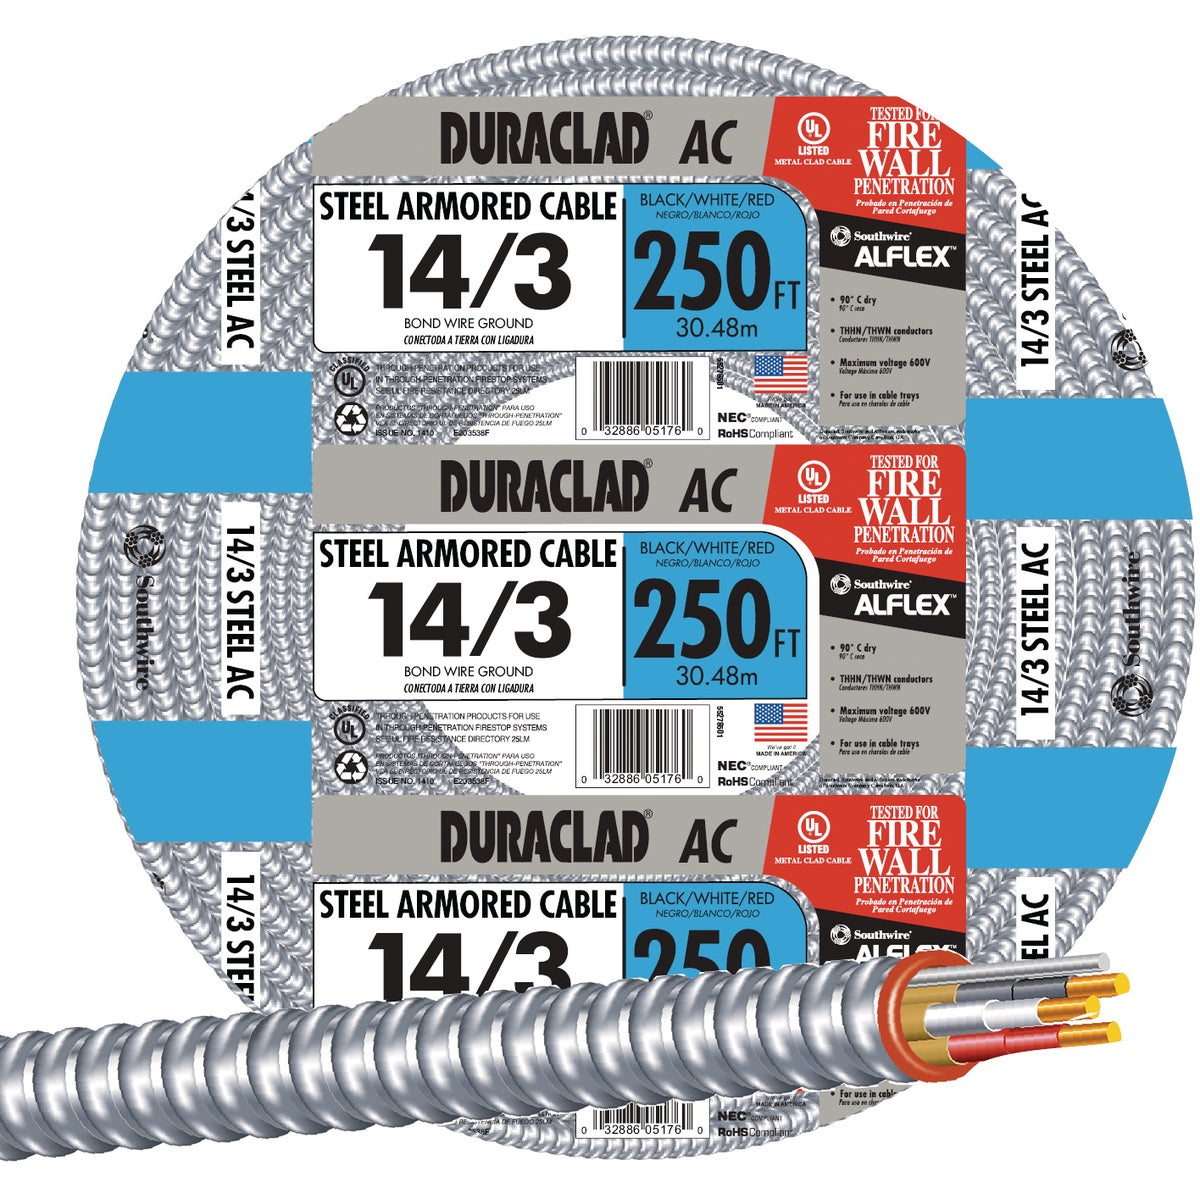 250' 14/3 STL ARMR CABLE - 55278501 by Southwire Company